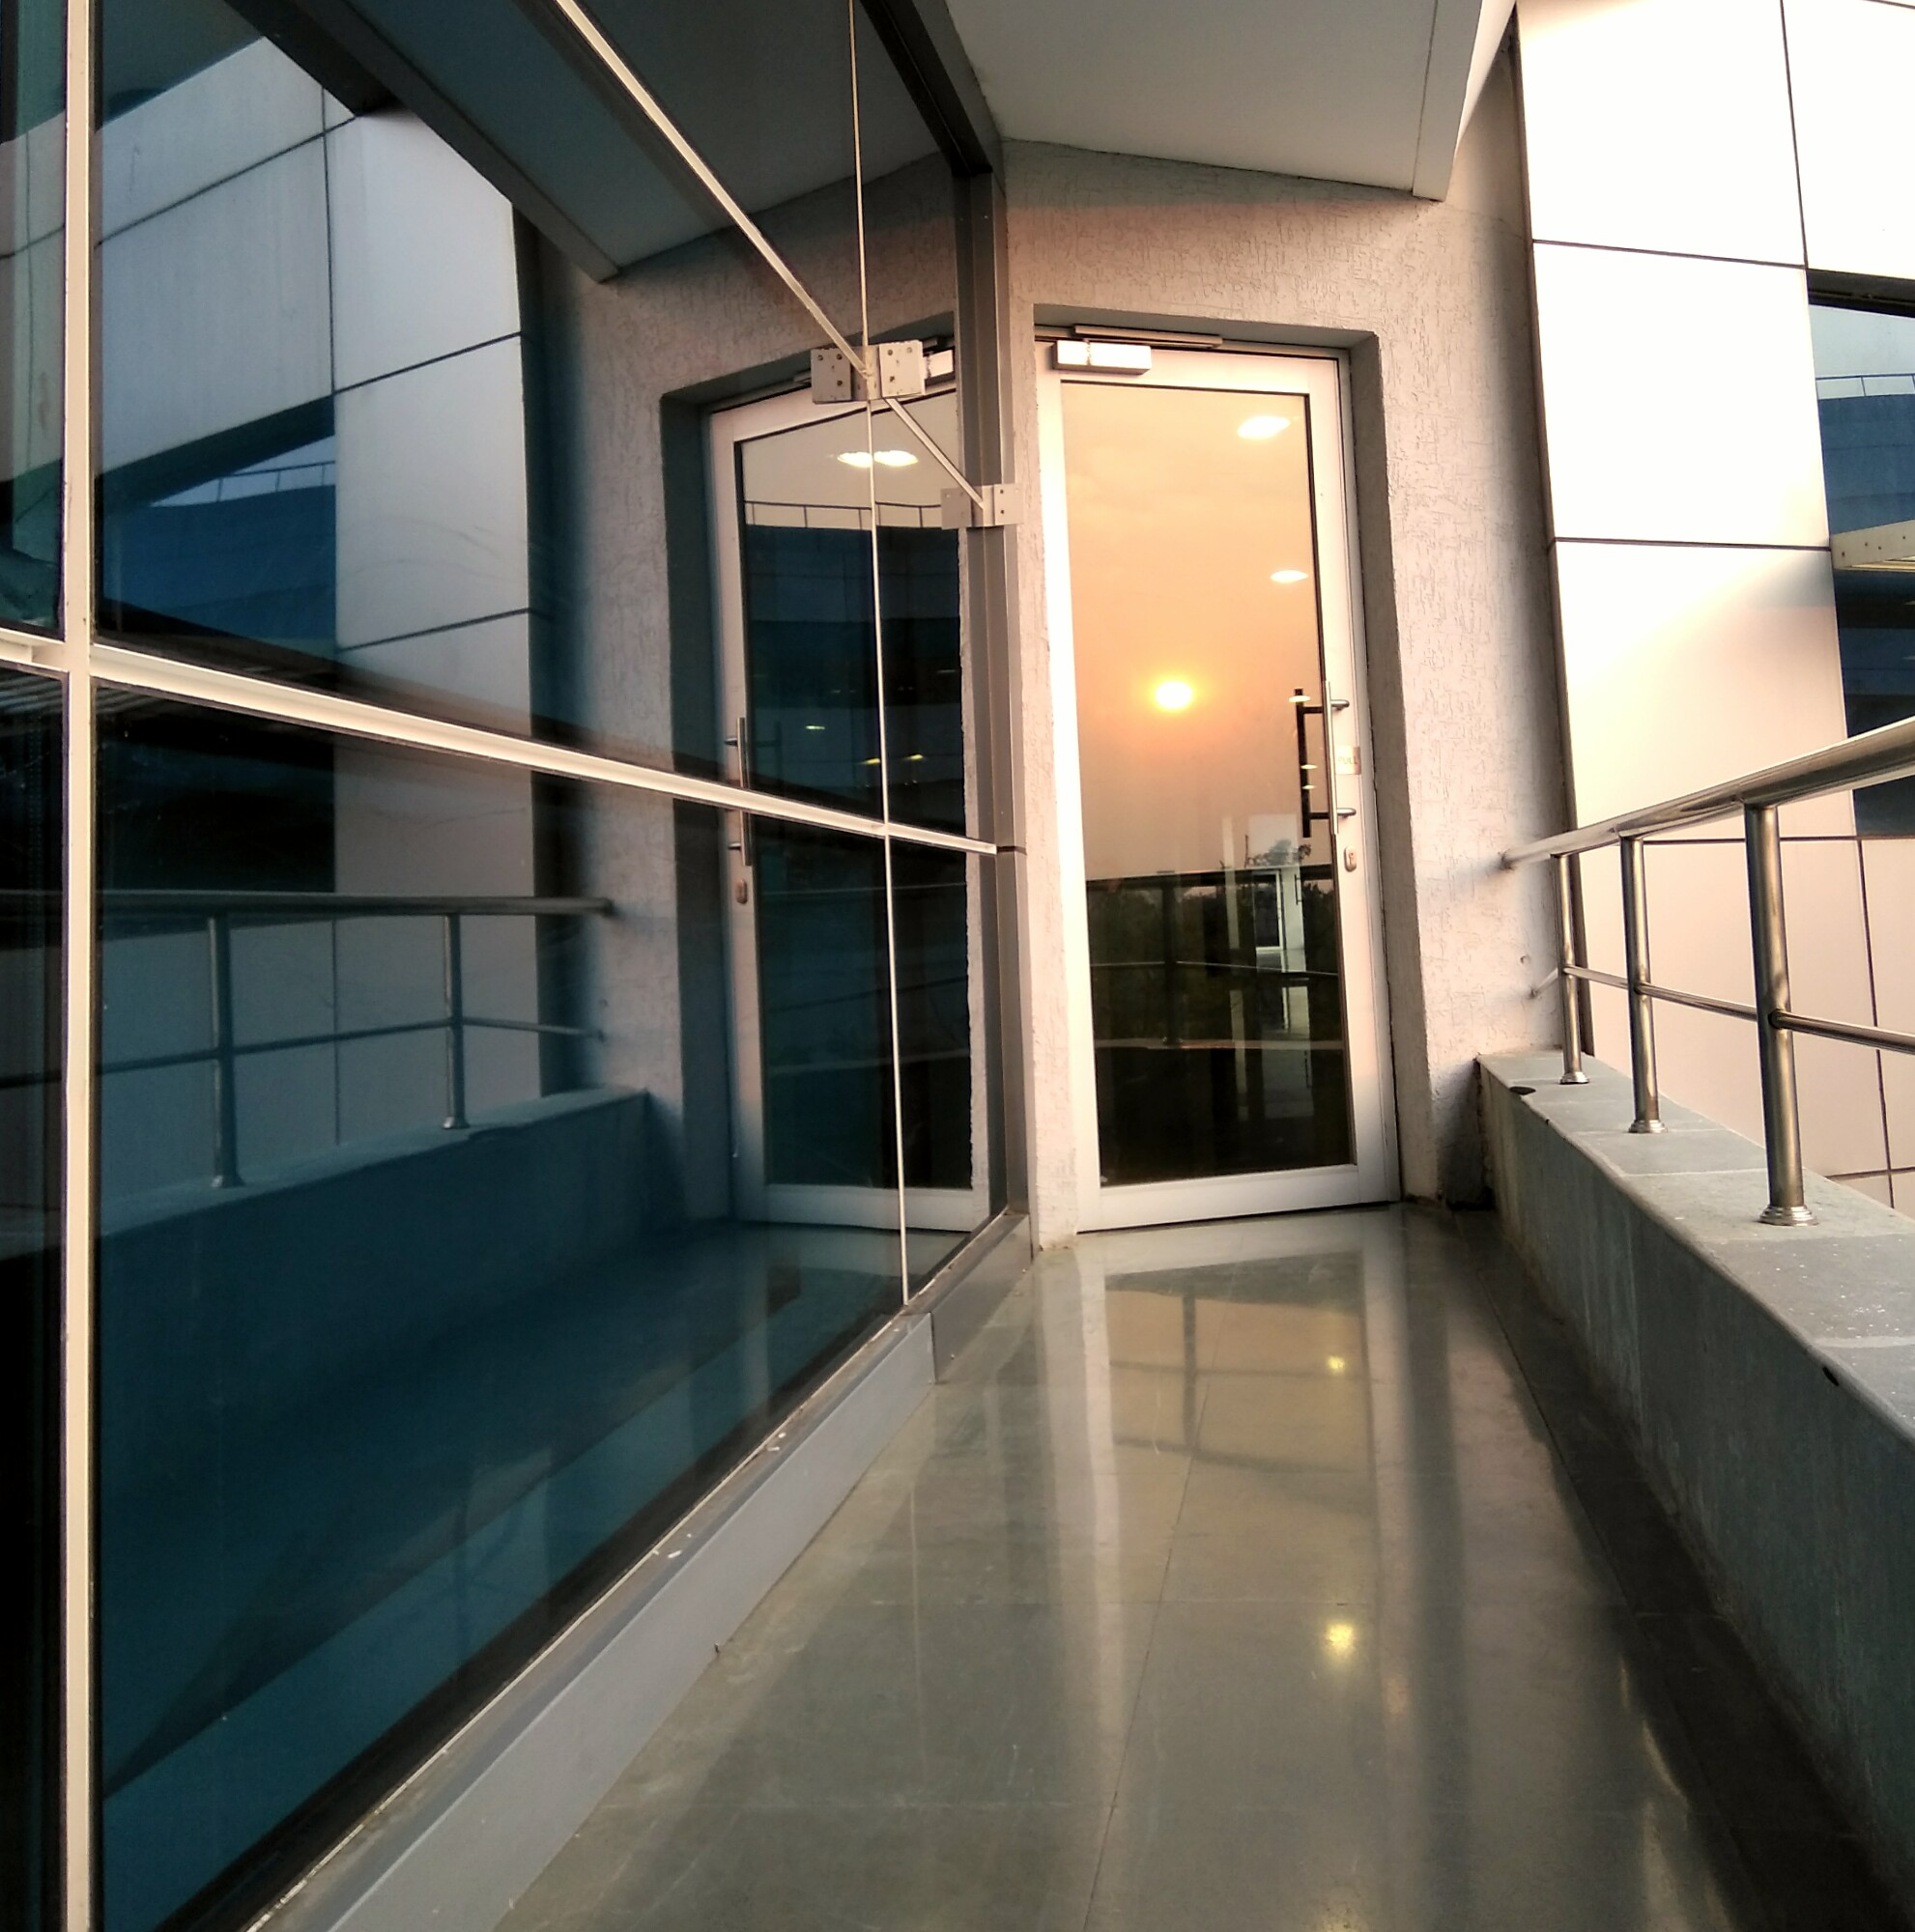 Our T spot in office look dramatically awesome on a warm evening